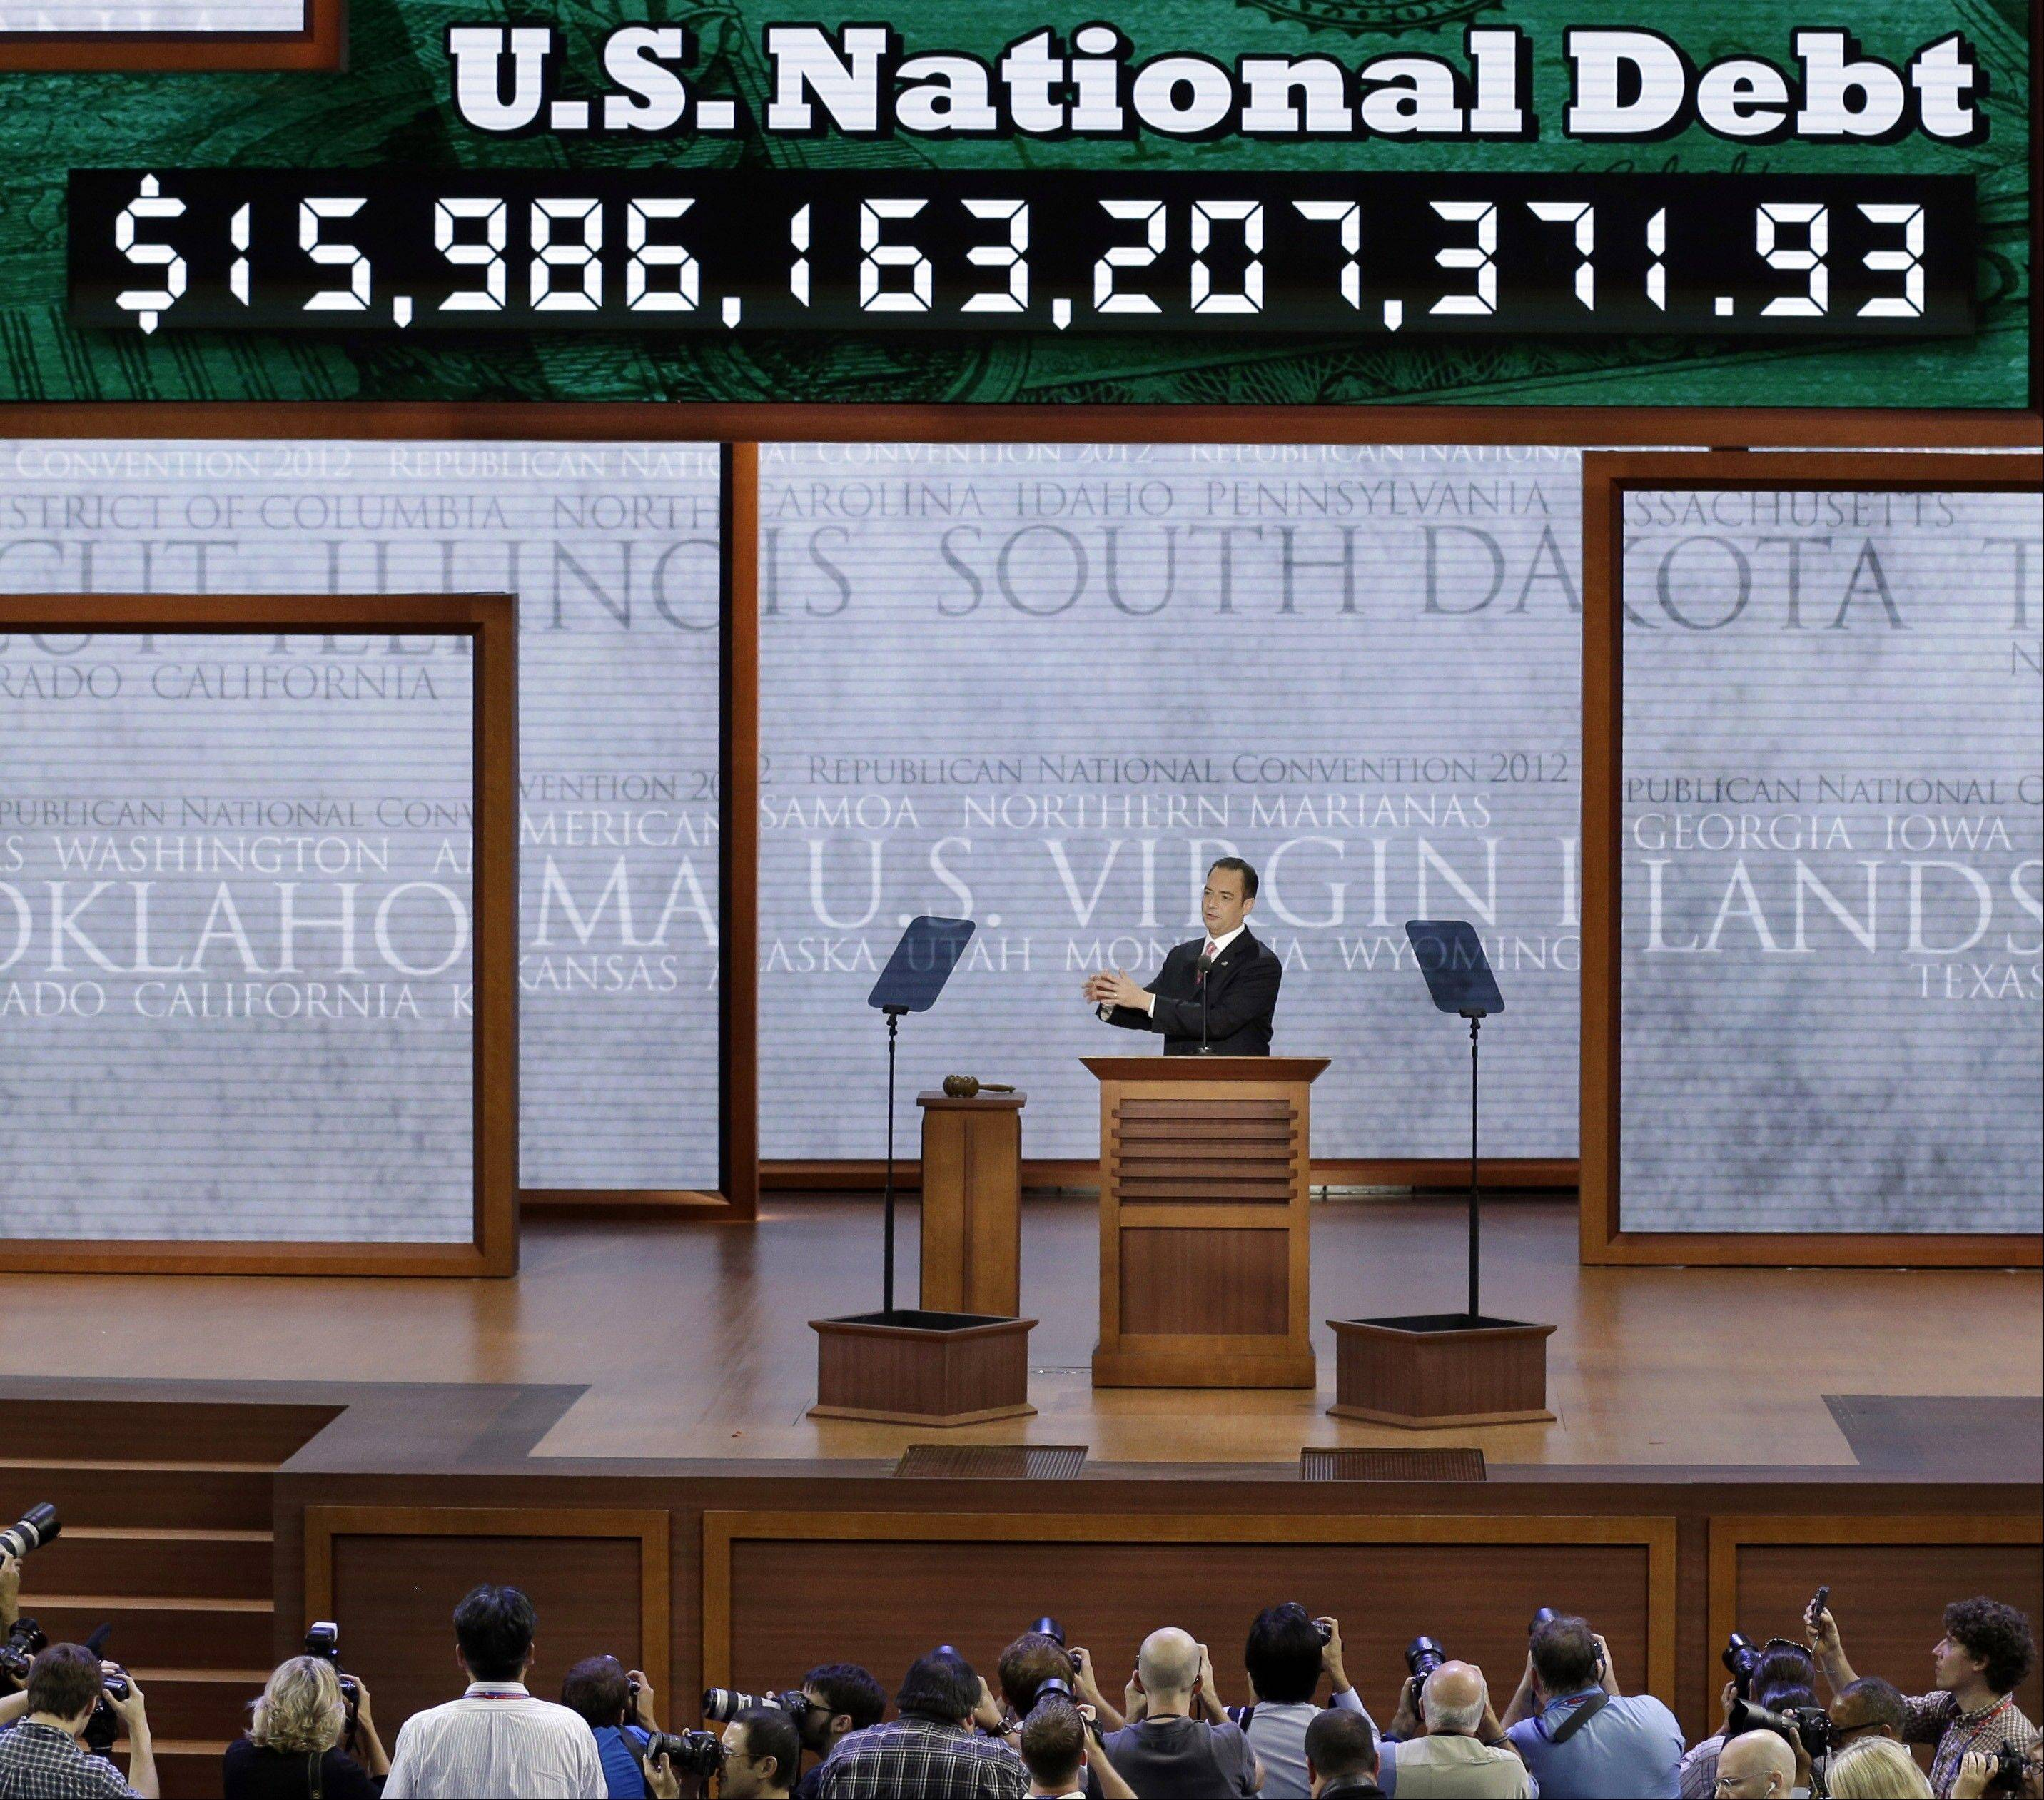 Republican National Committee Chairman Reince Priebus announces the display of the debt ticker during the Republican National Convention in Tampa, Fla., Aug. 27.